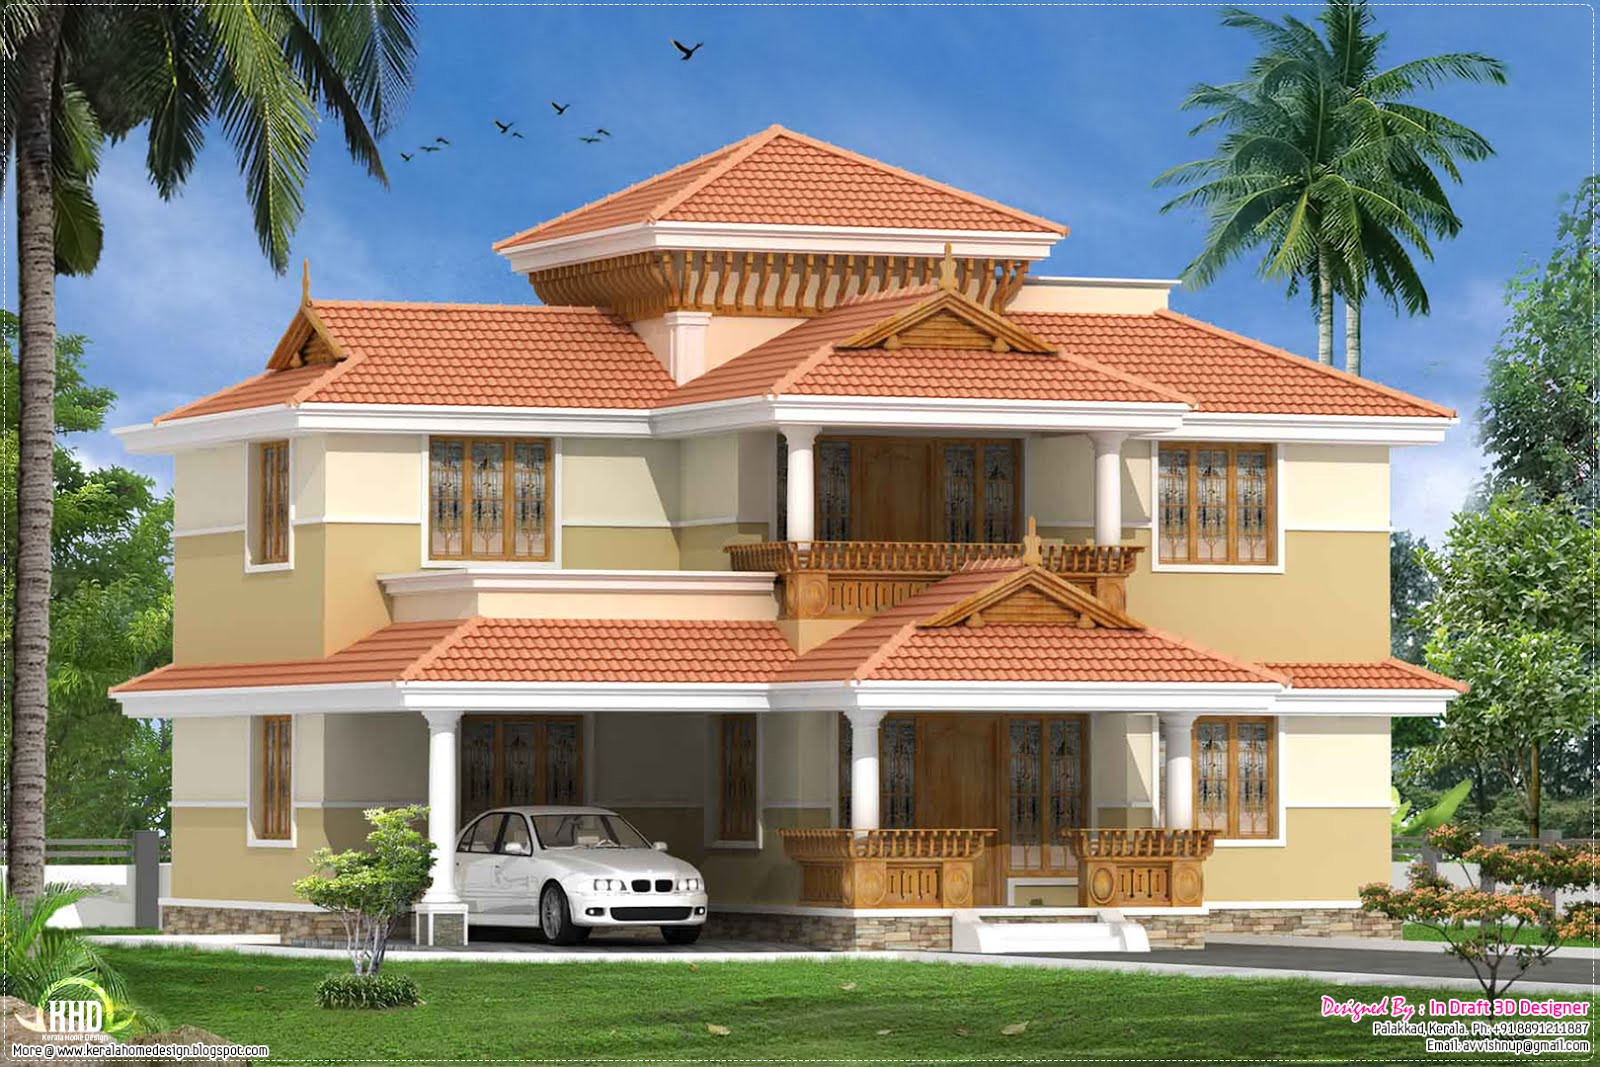 Kerala traditional 4 bed room villa 2060 kerala for Kerala homes photo gallery